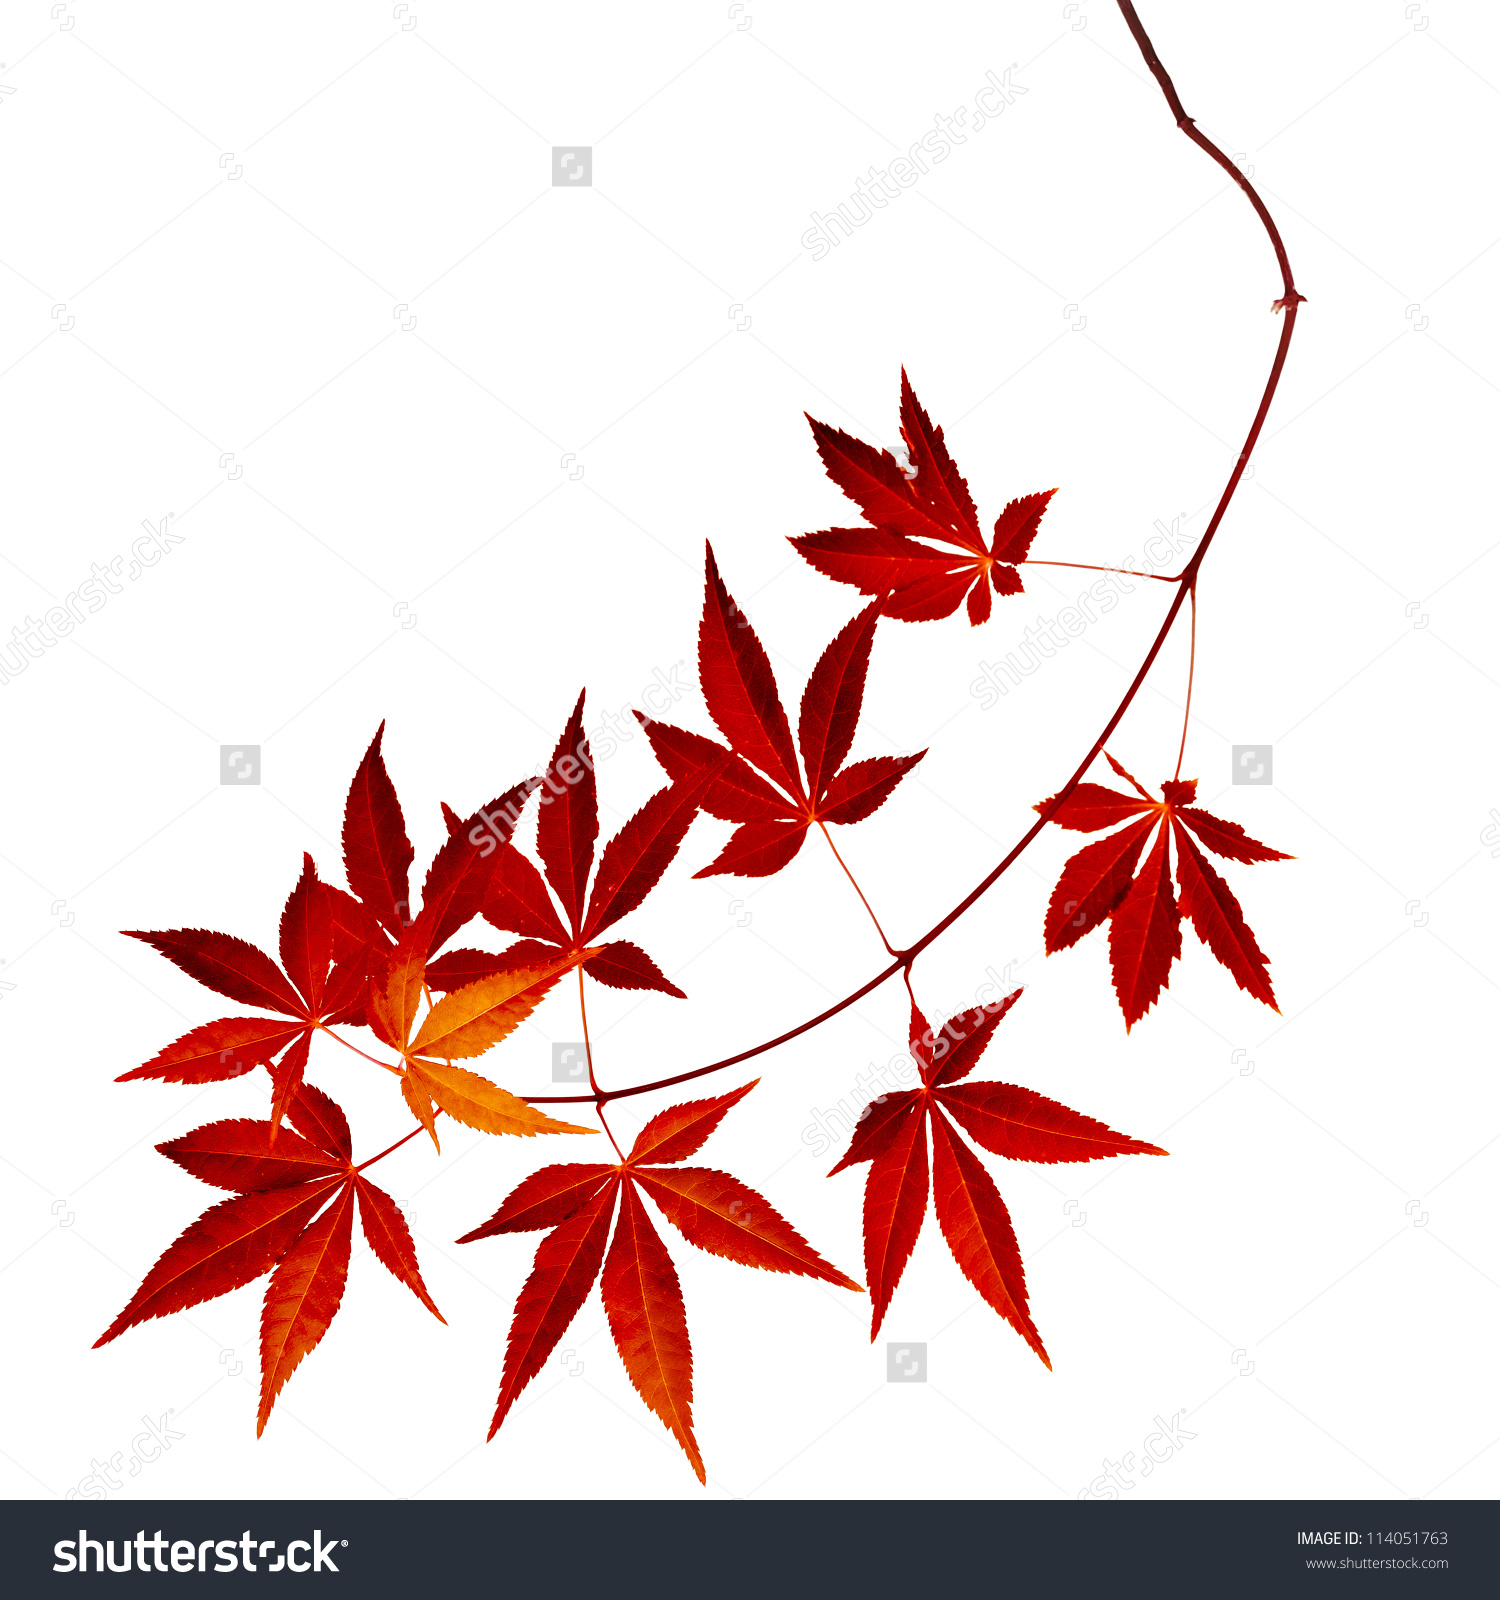 Japanese Red Autumn Maple Tree Leaves Stock Photo 114051763.